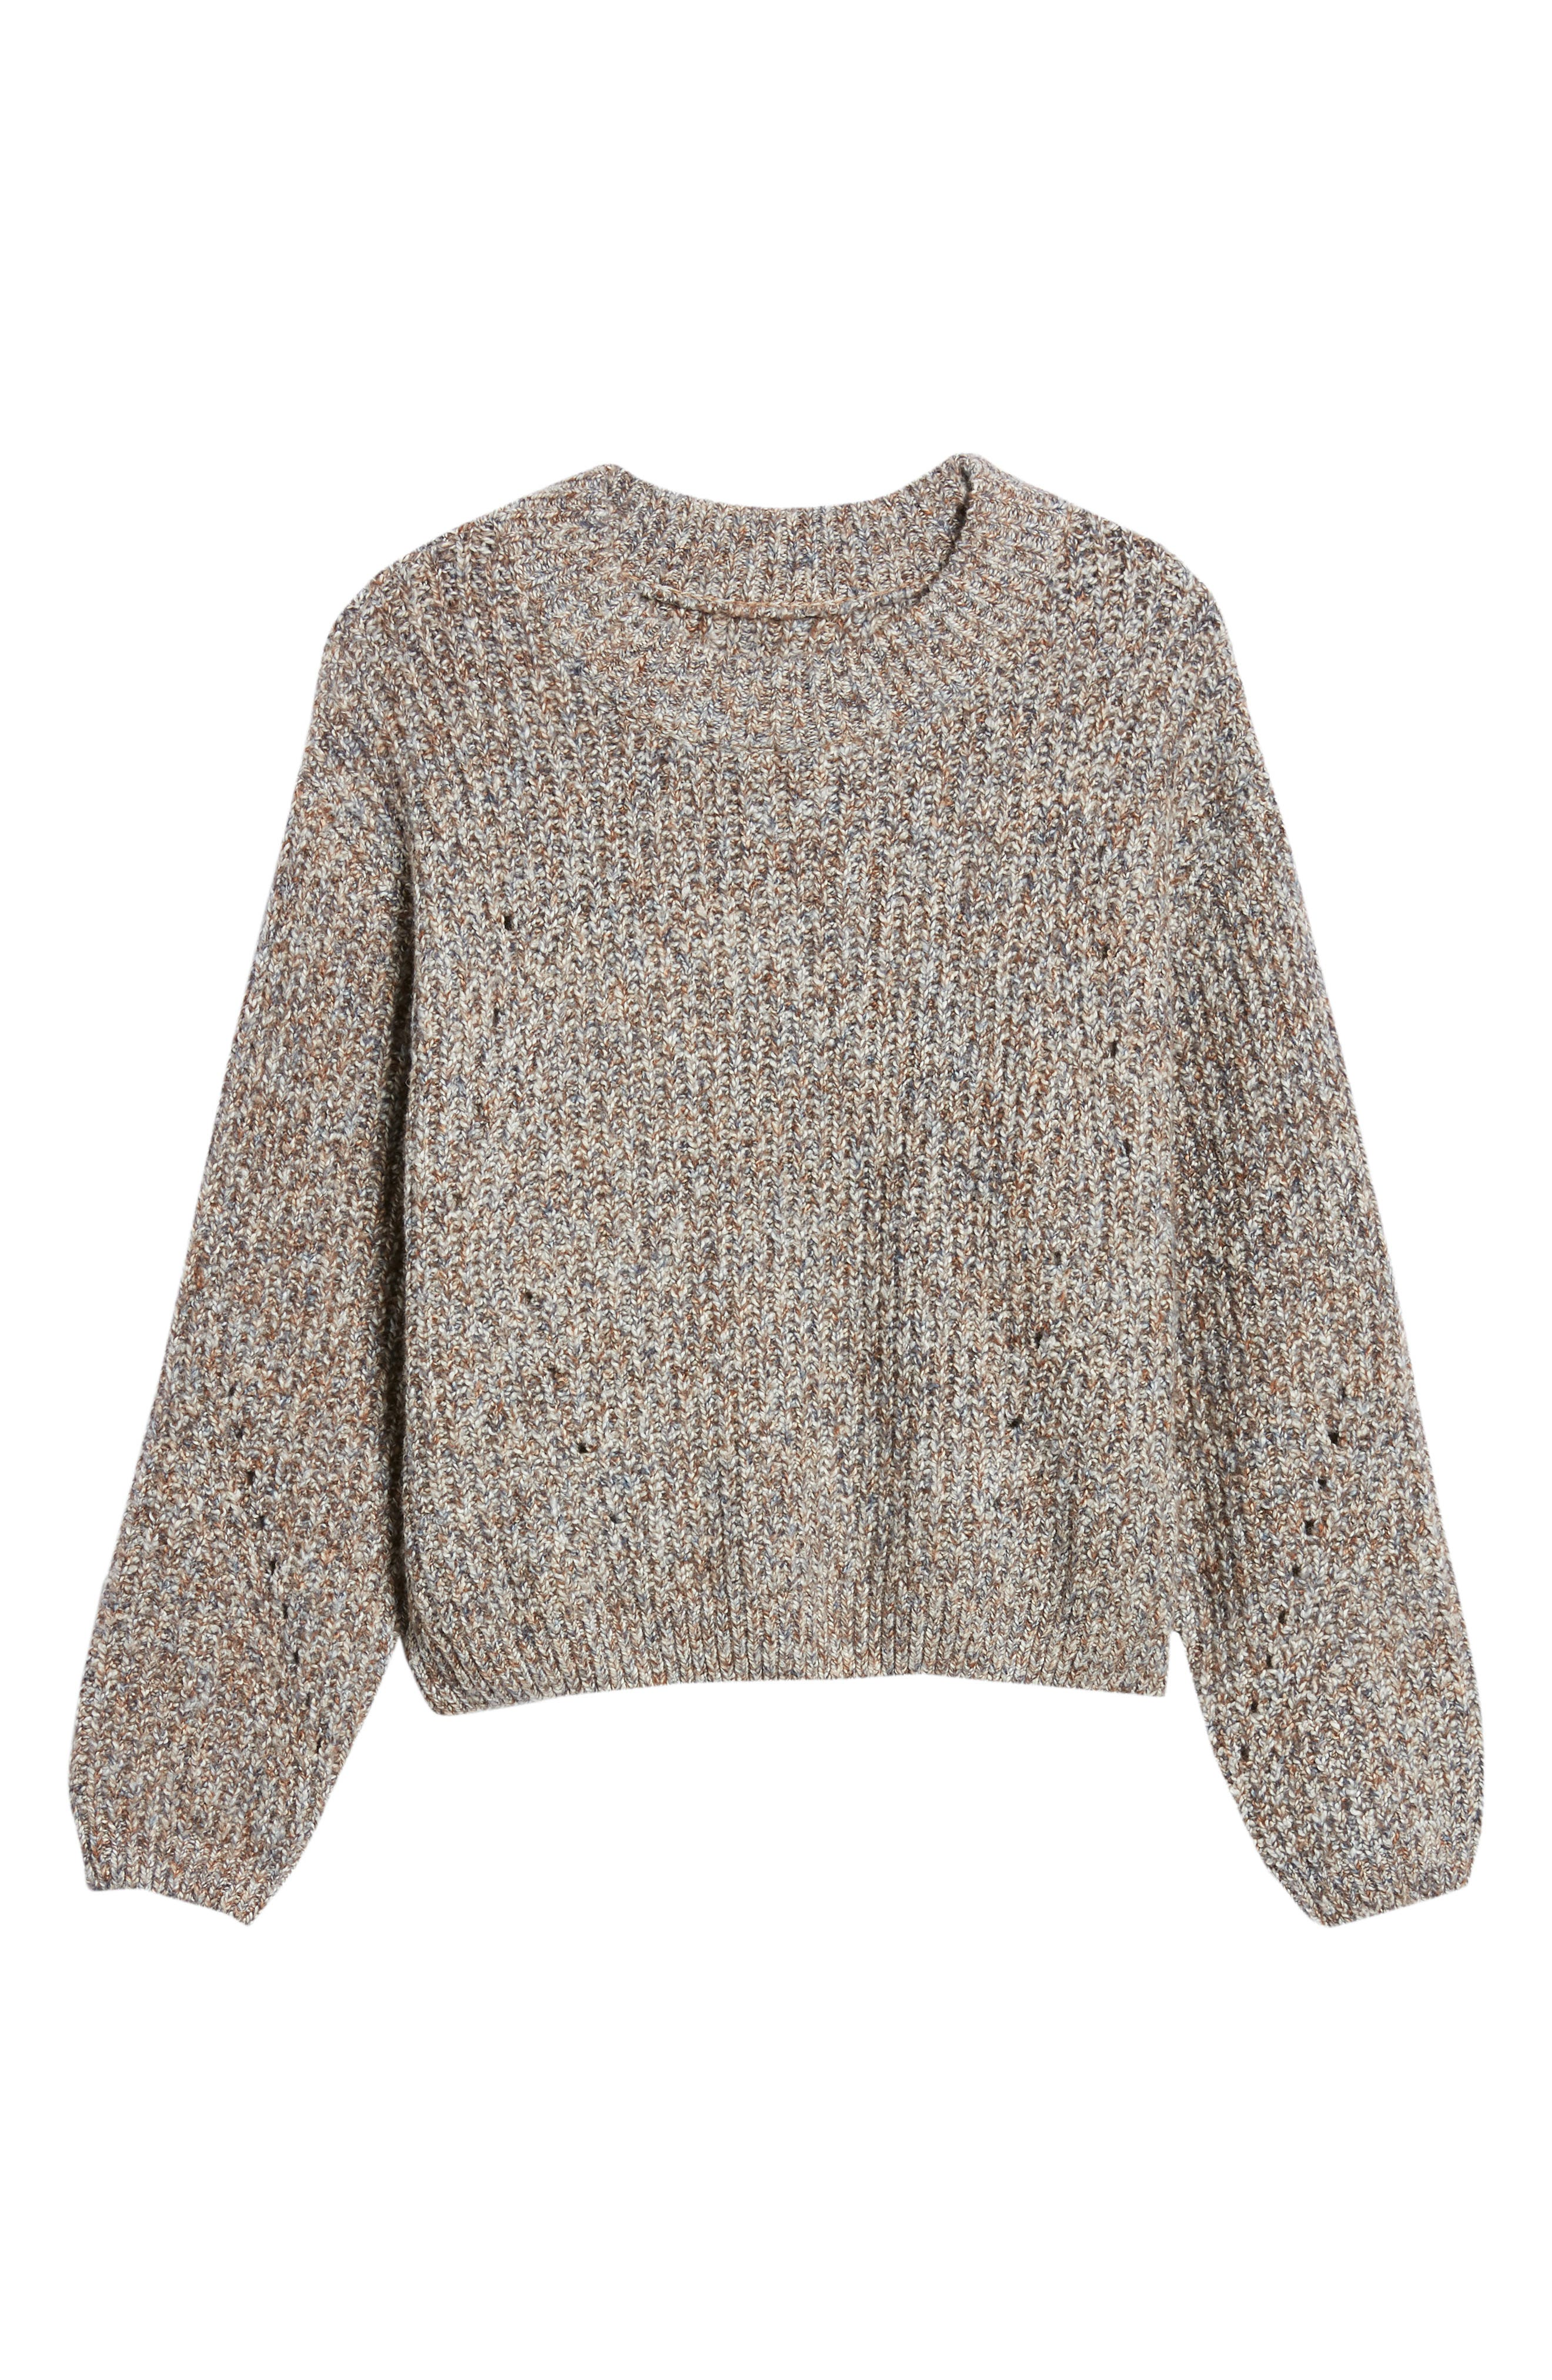 Heritage Stitch Sweater,                             Alternate thumbnail 6, color,                             021